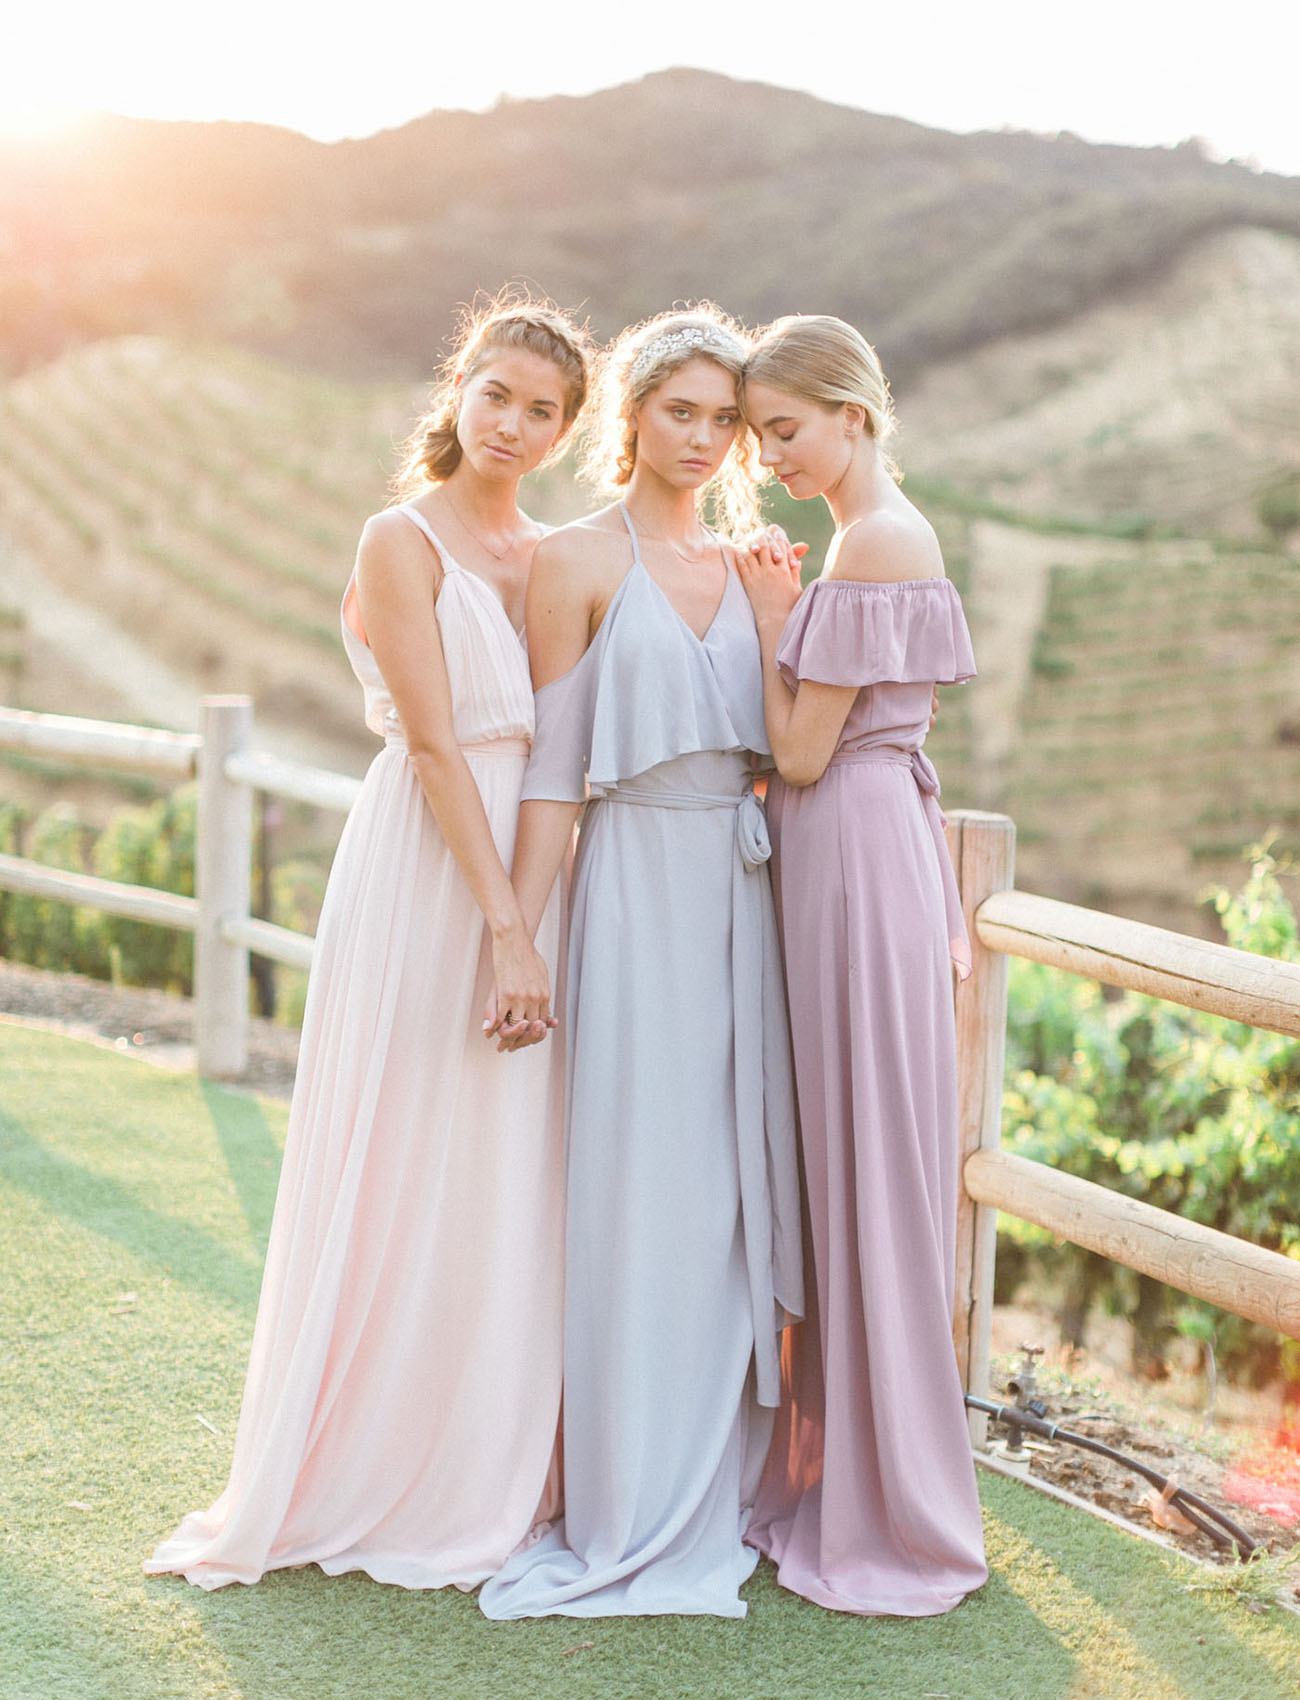 The new romantic bridesmaid dresses by joanna august for Wedding dresses bridesmaid